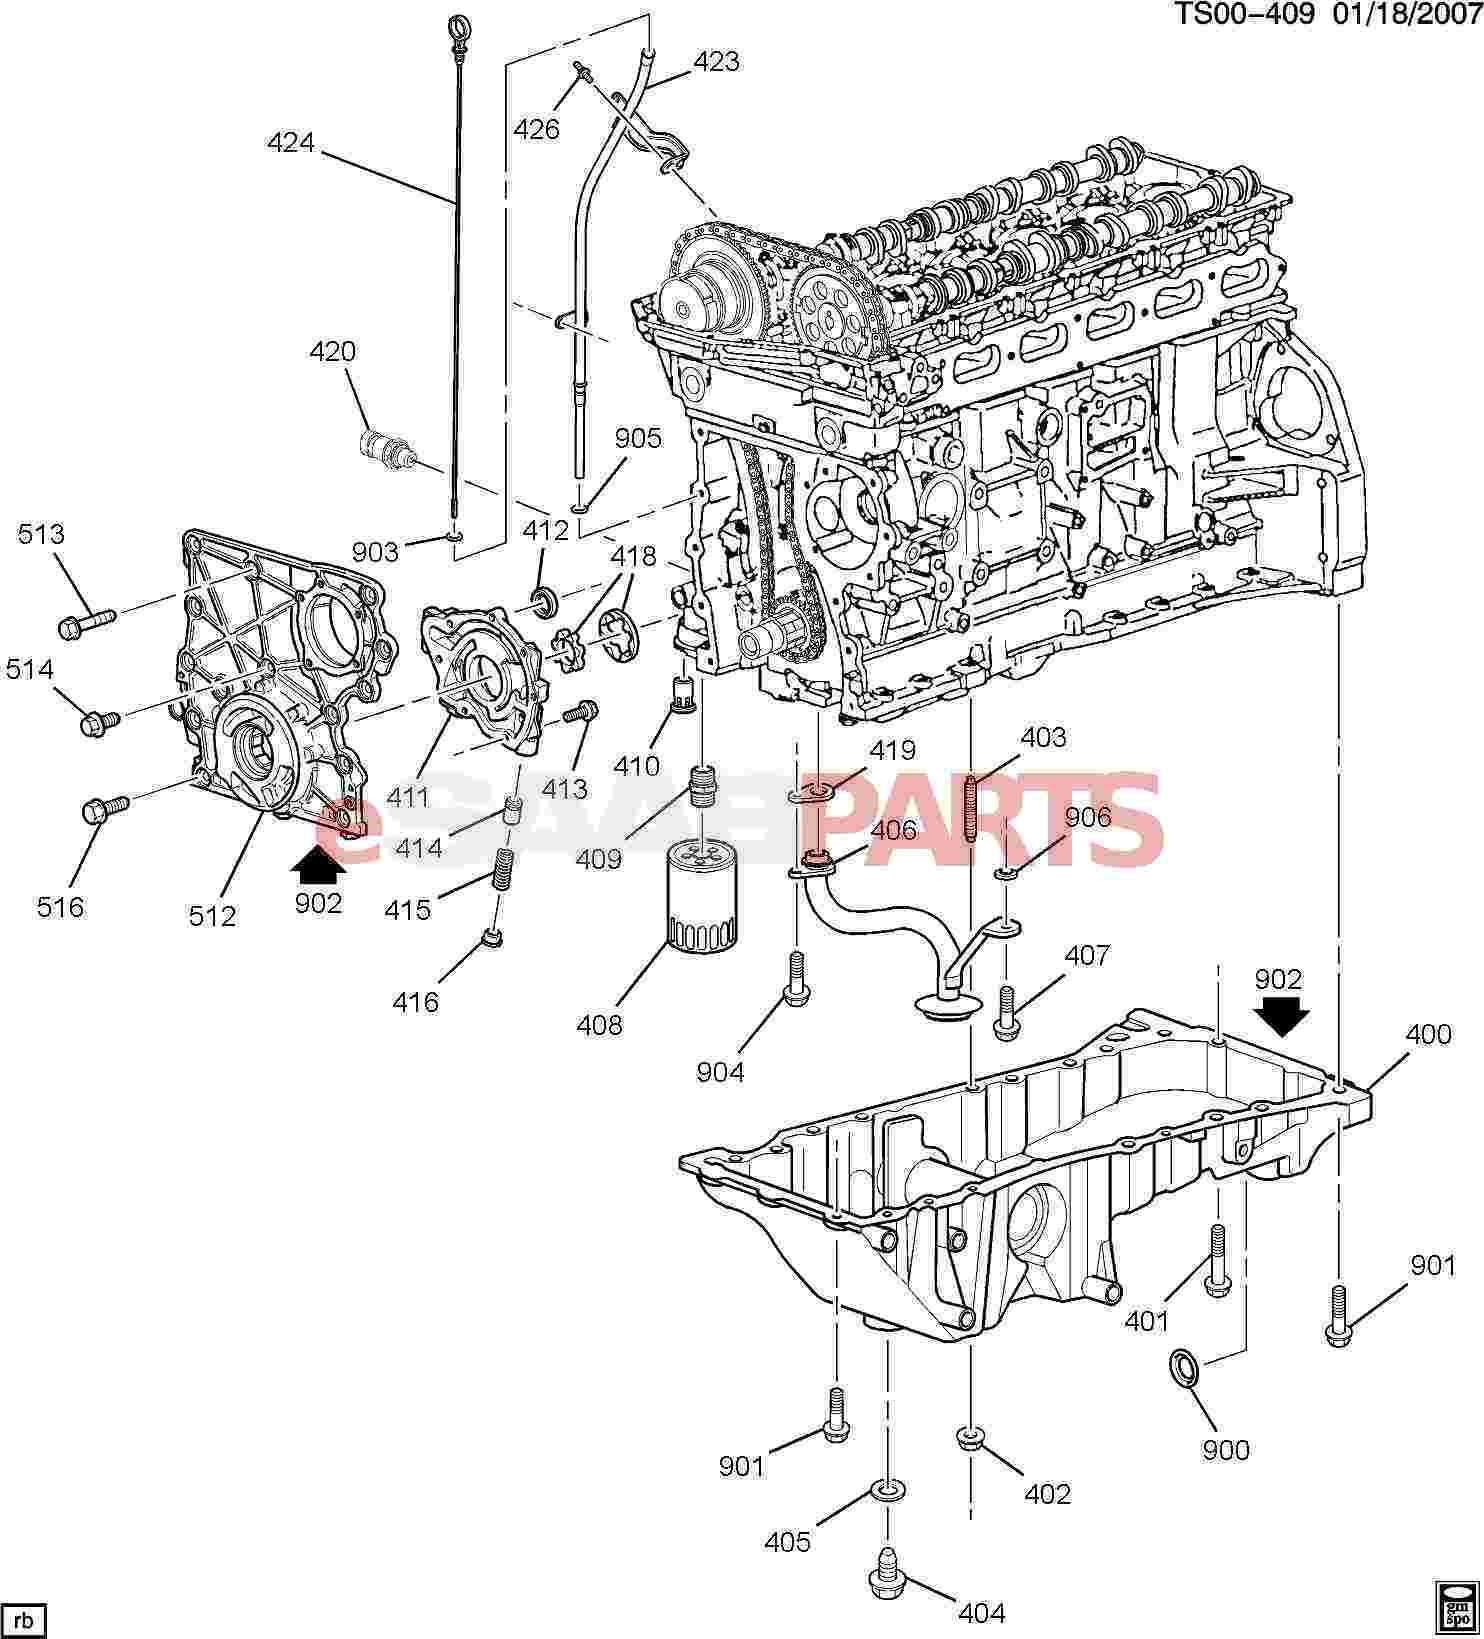 T24449760 Need exact location picture coolant moreover 1999 Hyundai Accent Engine Diagram also RepairGuideContent in addition 1621456 Lt1 1948 Chevy in addition 1985 Olds 307 Vacuum Line Diagram. on saab 9 5 vacuum lines wiring diagrams